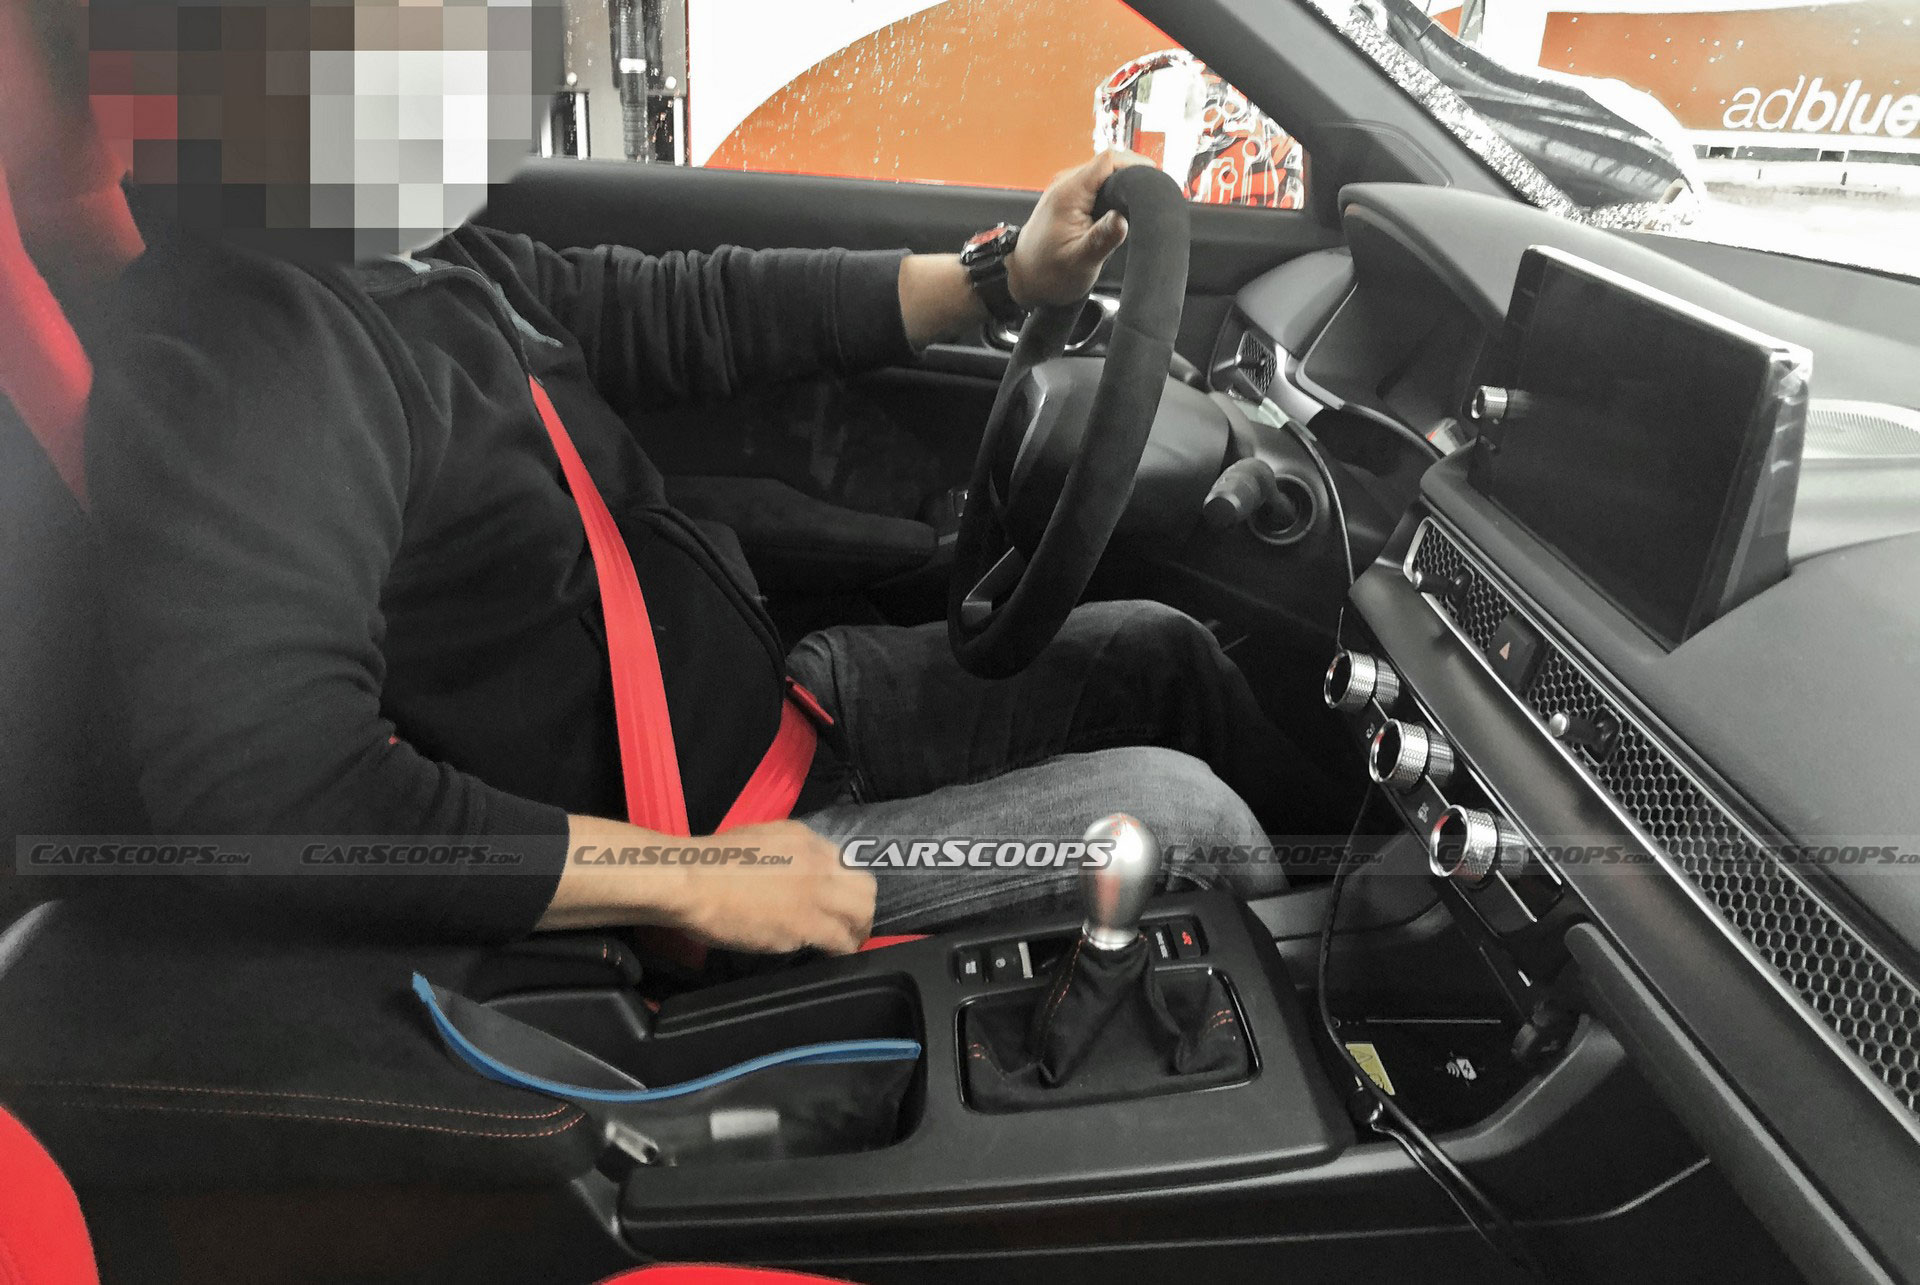 The camera-wielding crowd has managed to snap a few cabin pics of the still-to-be-launched 2022 Honda Civic Type R. It seems that the car will be trimmed with Alcantara and offer comfortable seats with enhanced lateral support alongside integrated headrests.